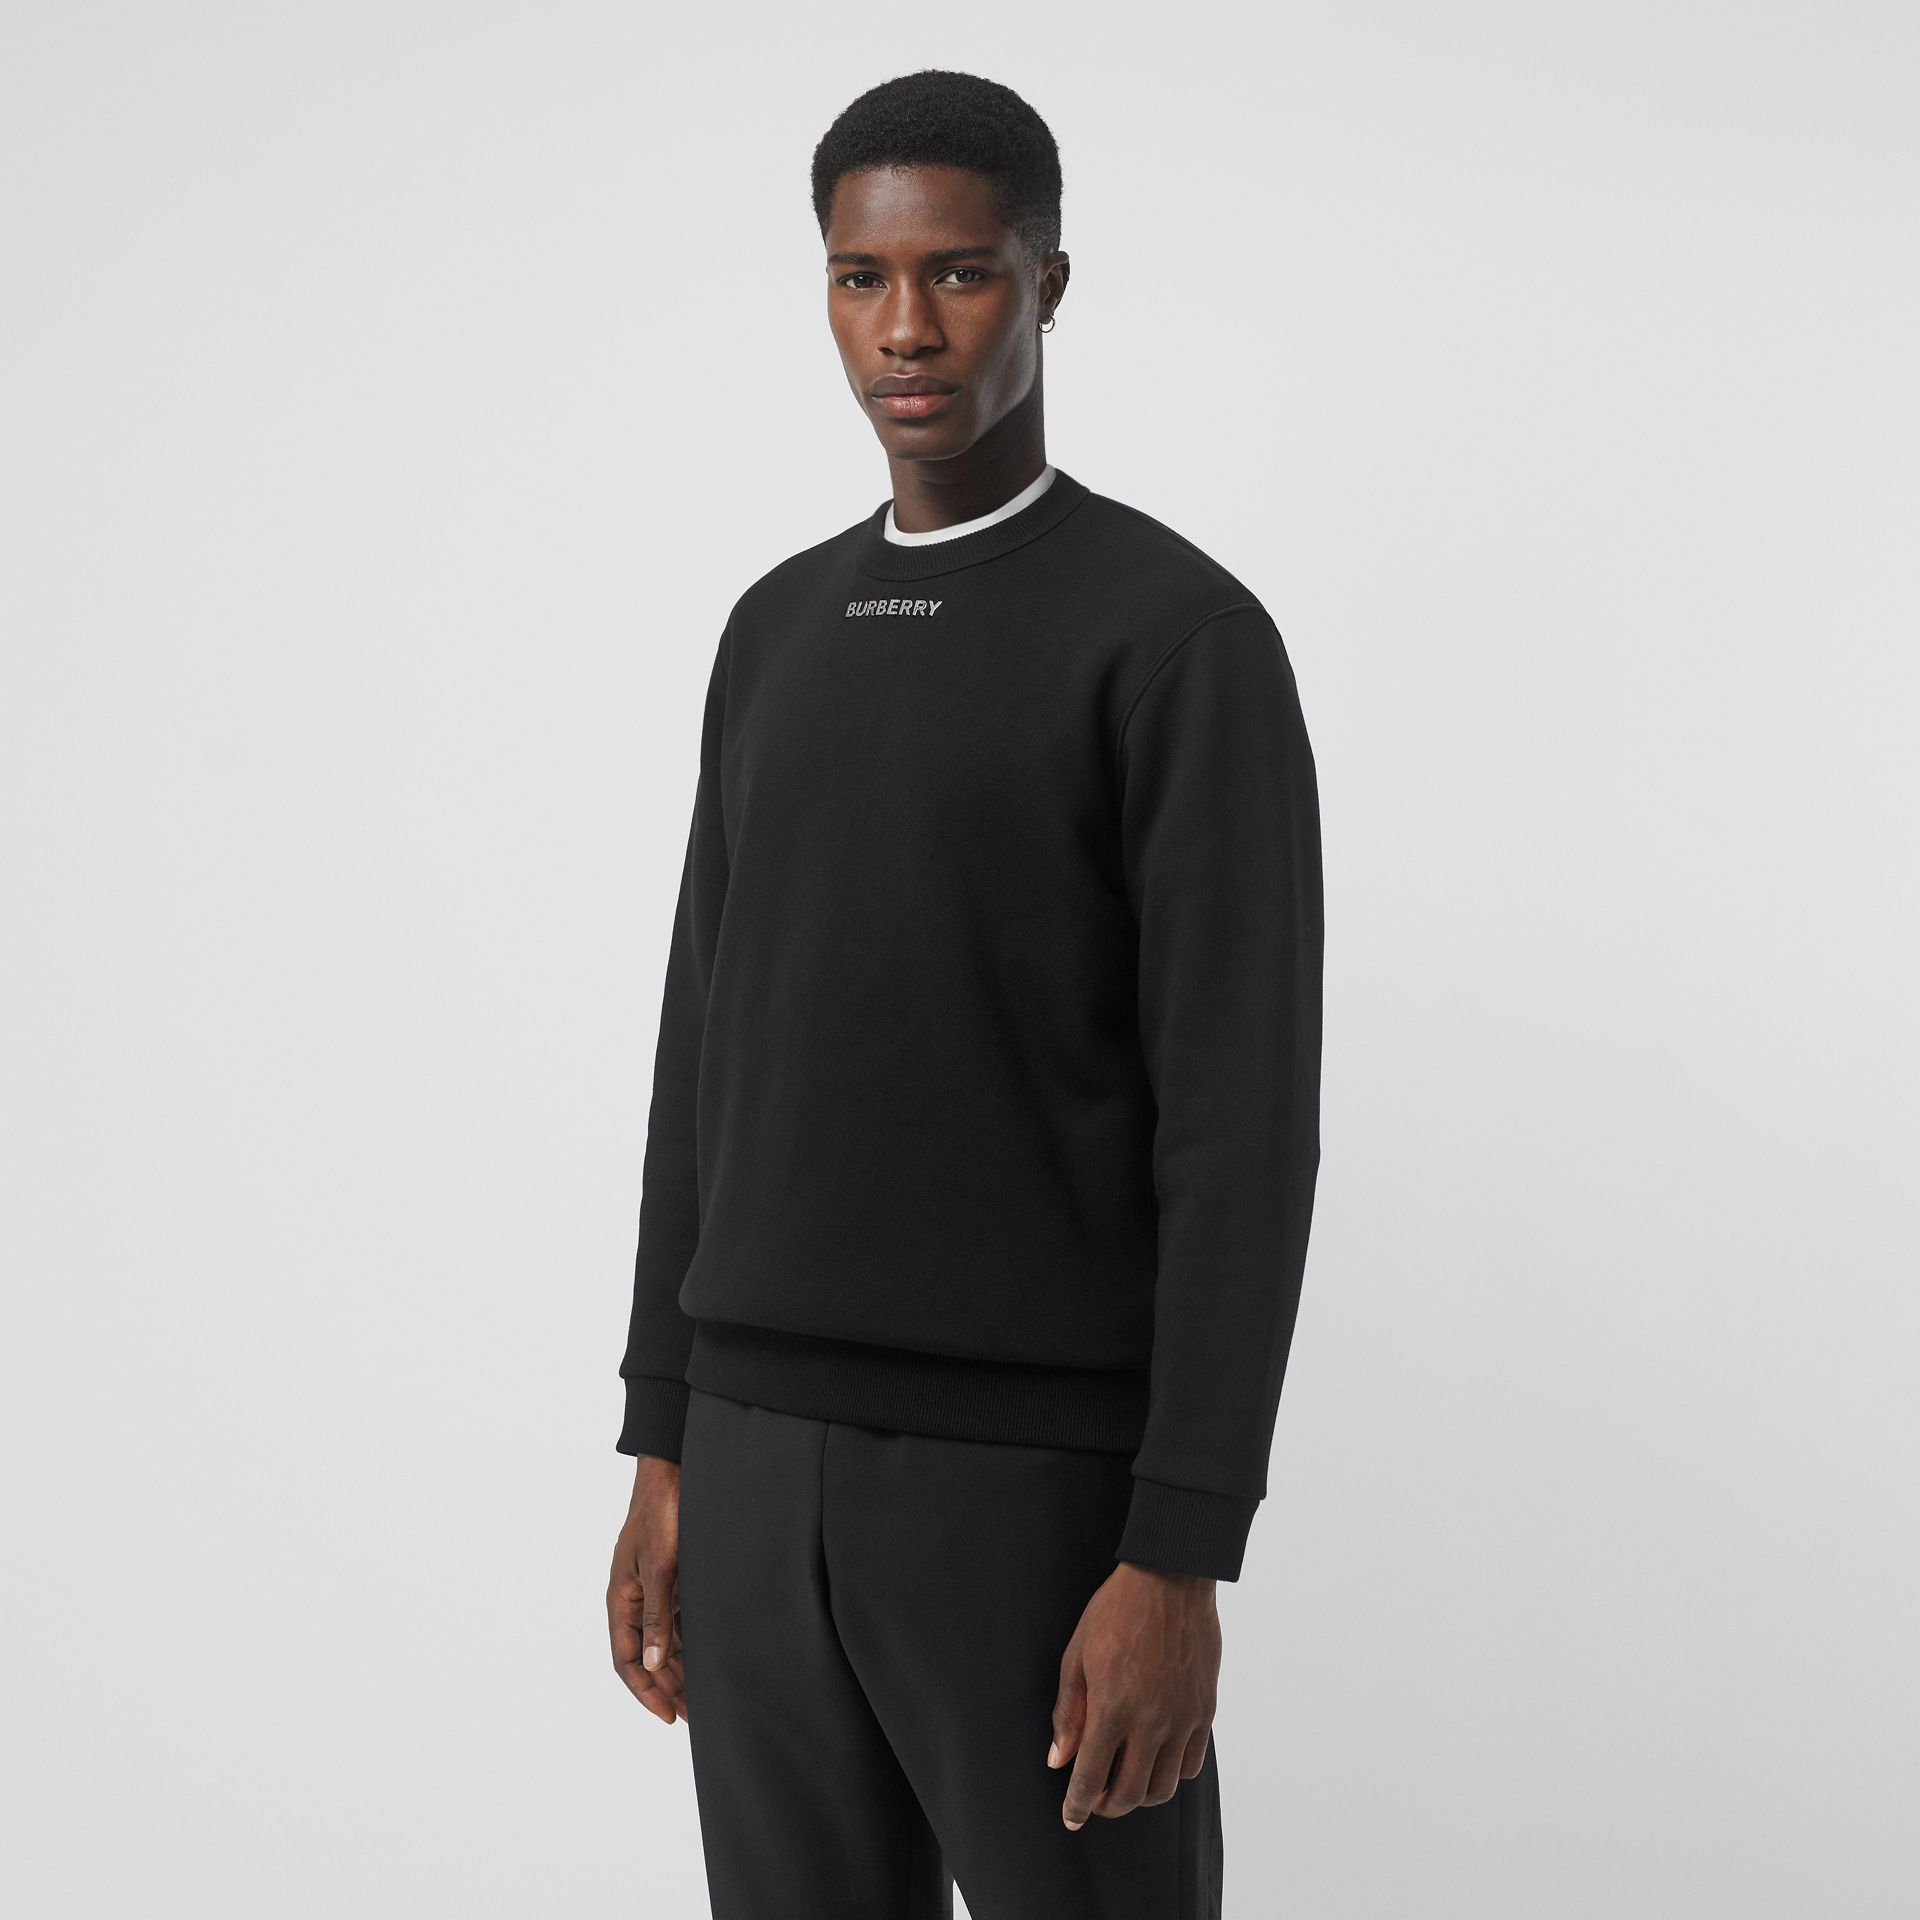 Sweat-shirt avec logo en métal (Noir) - Homme | Burberry - photo de la galerie 0